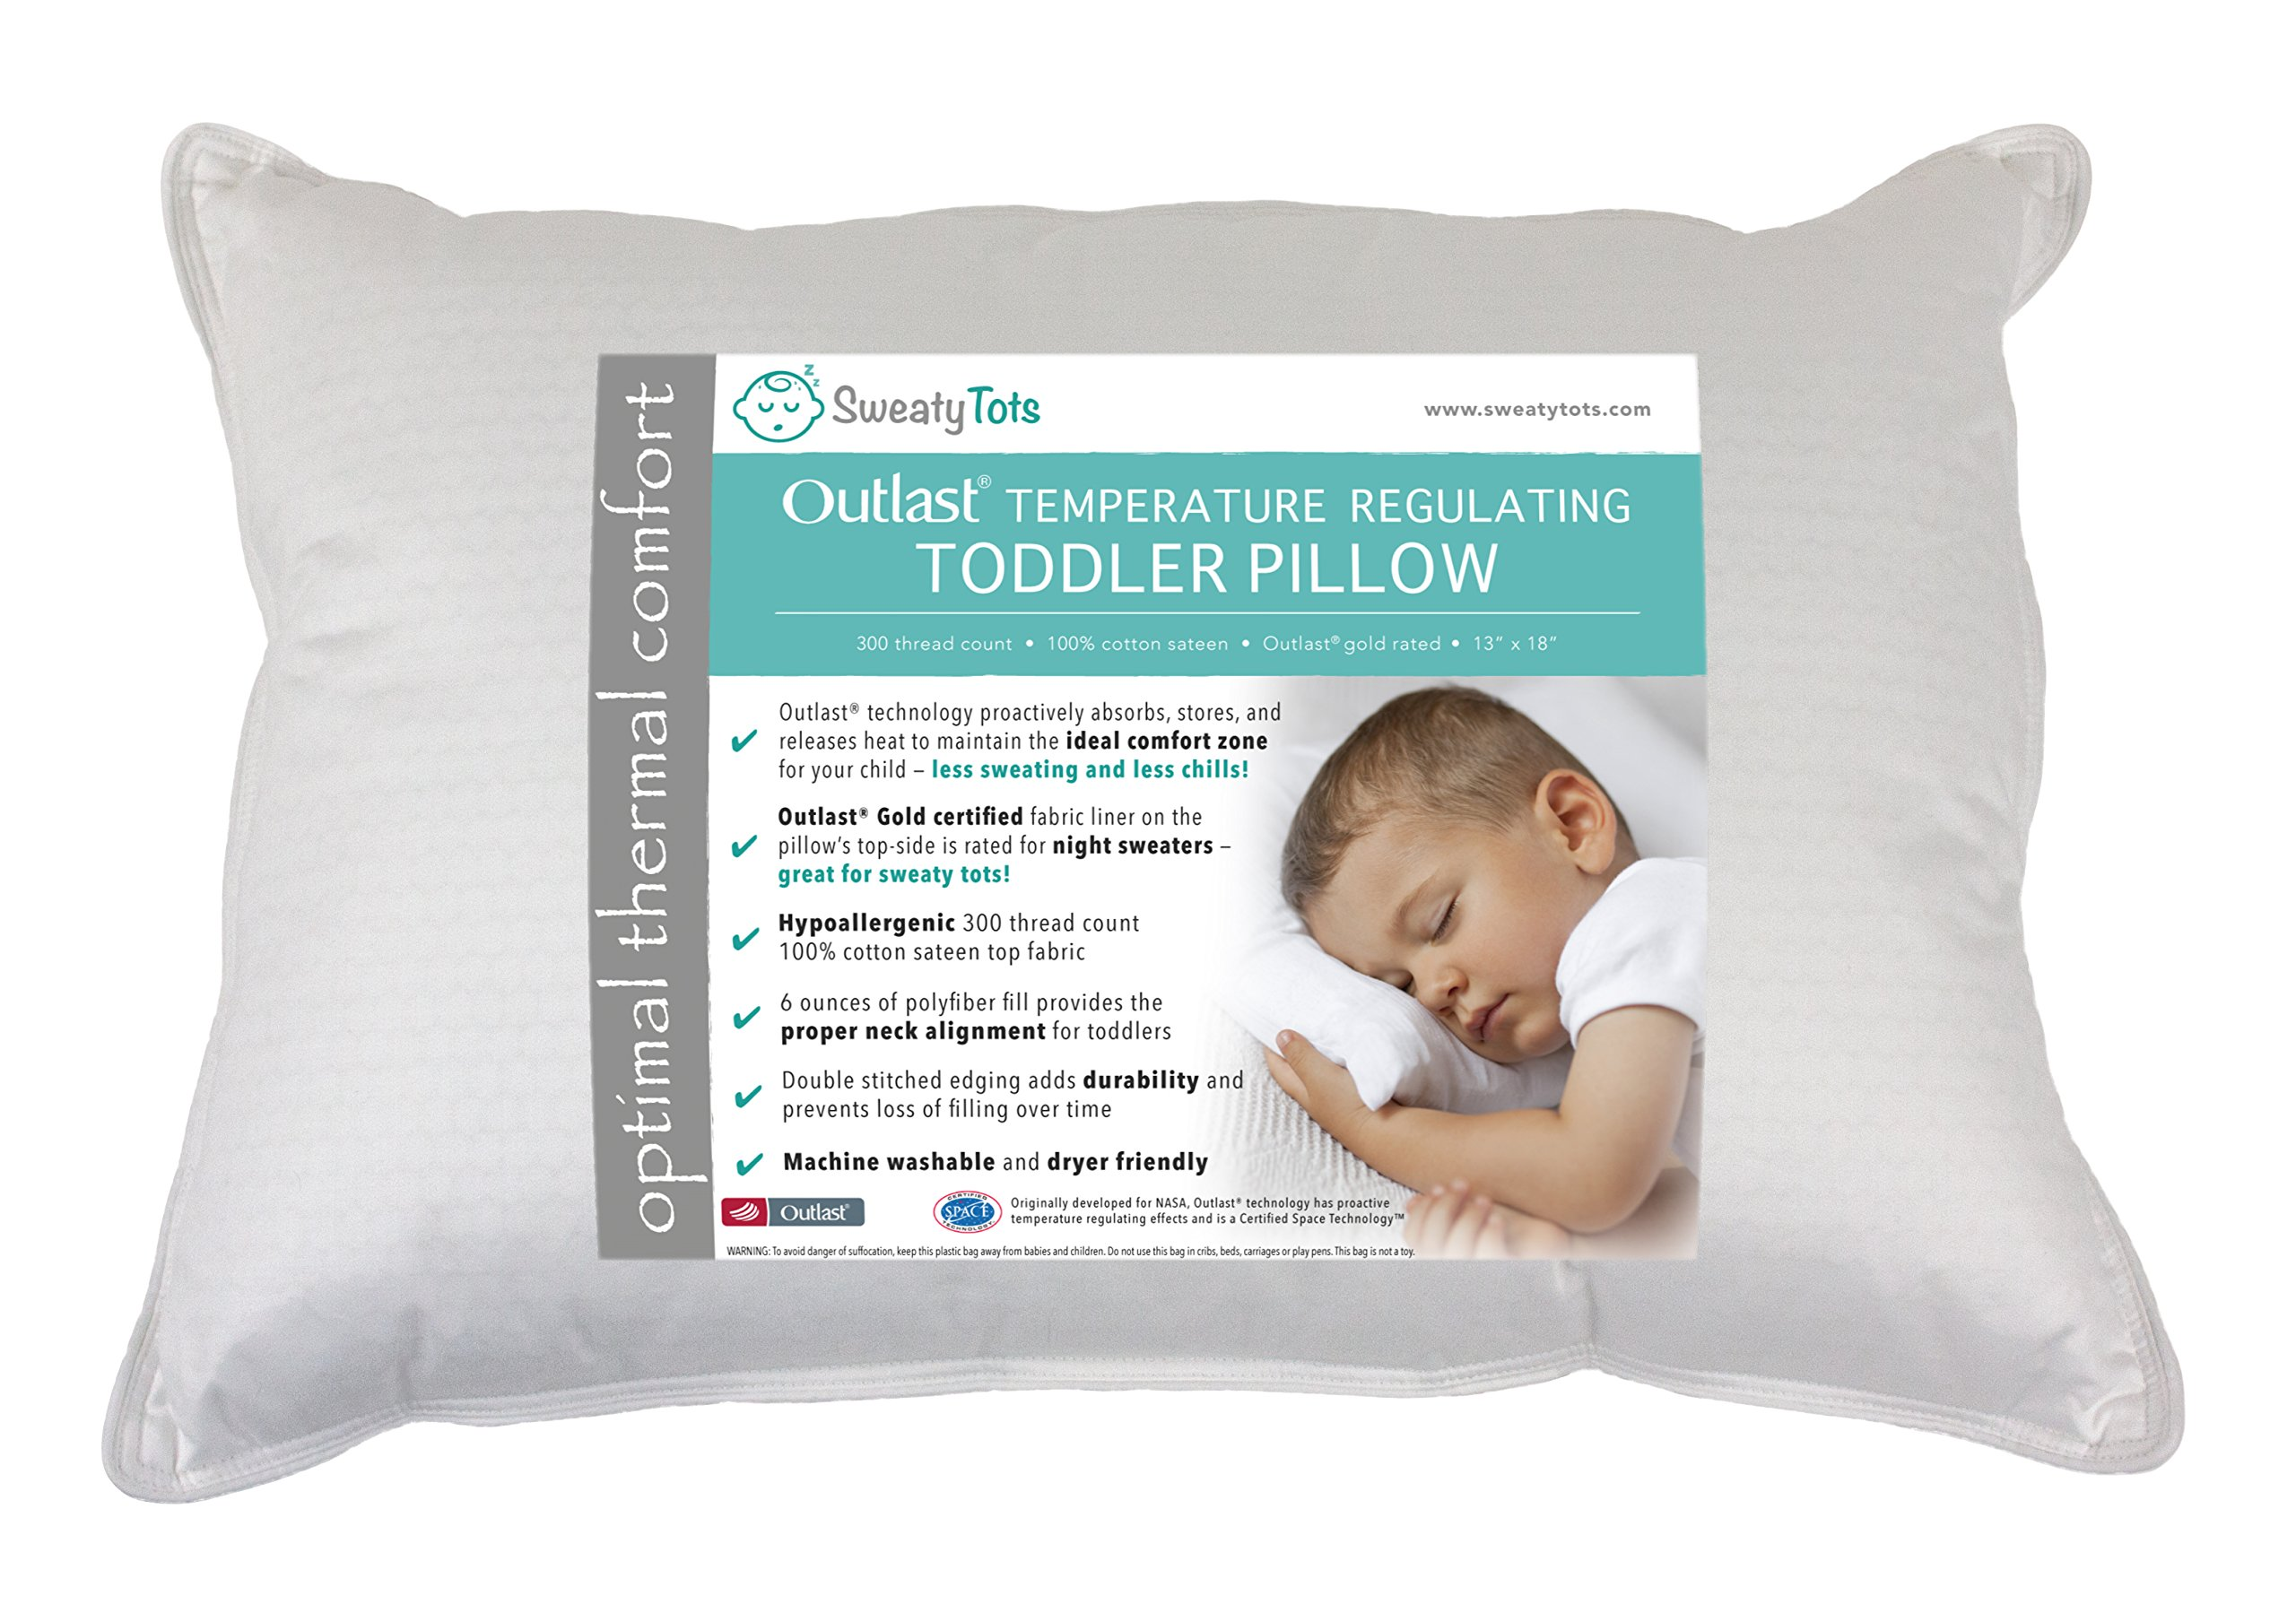 0ac445d947 Amazon.com   Toddler Pillow for Hot or Sweaty Sleepers - 13 x 18 ...